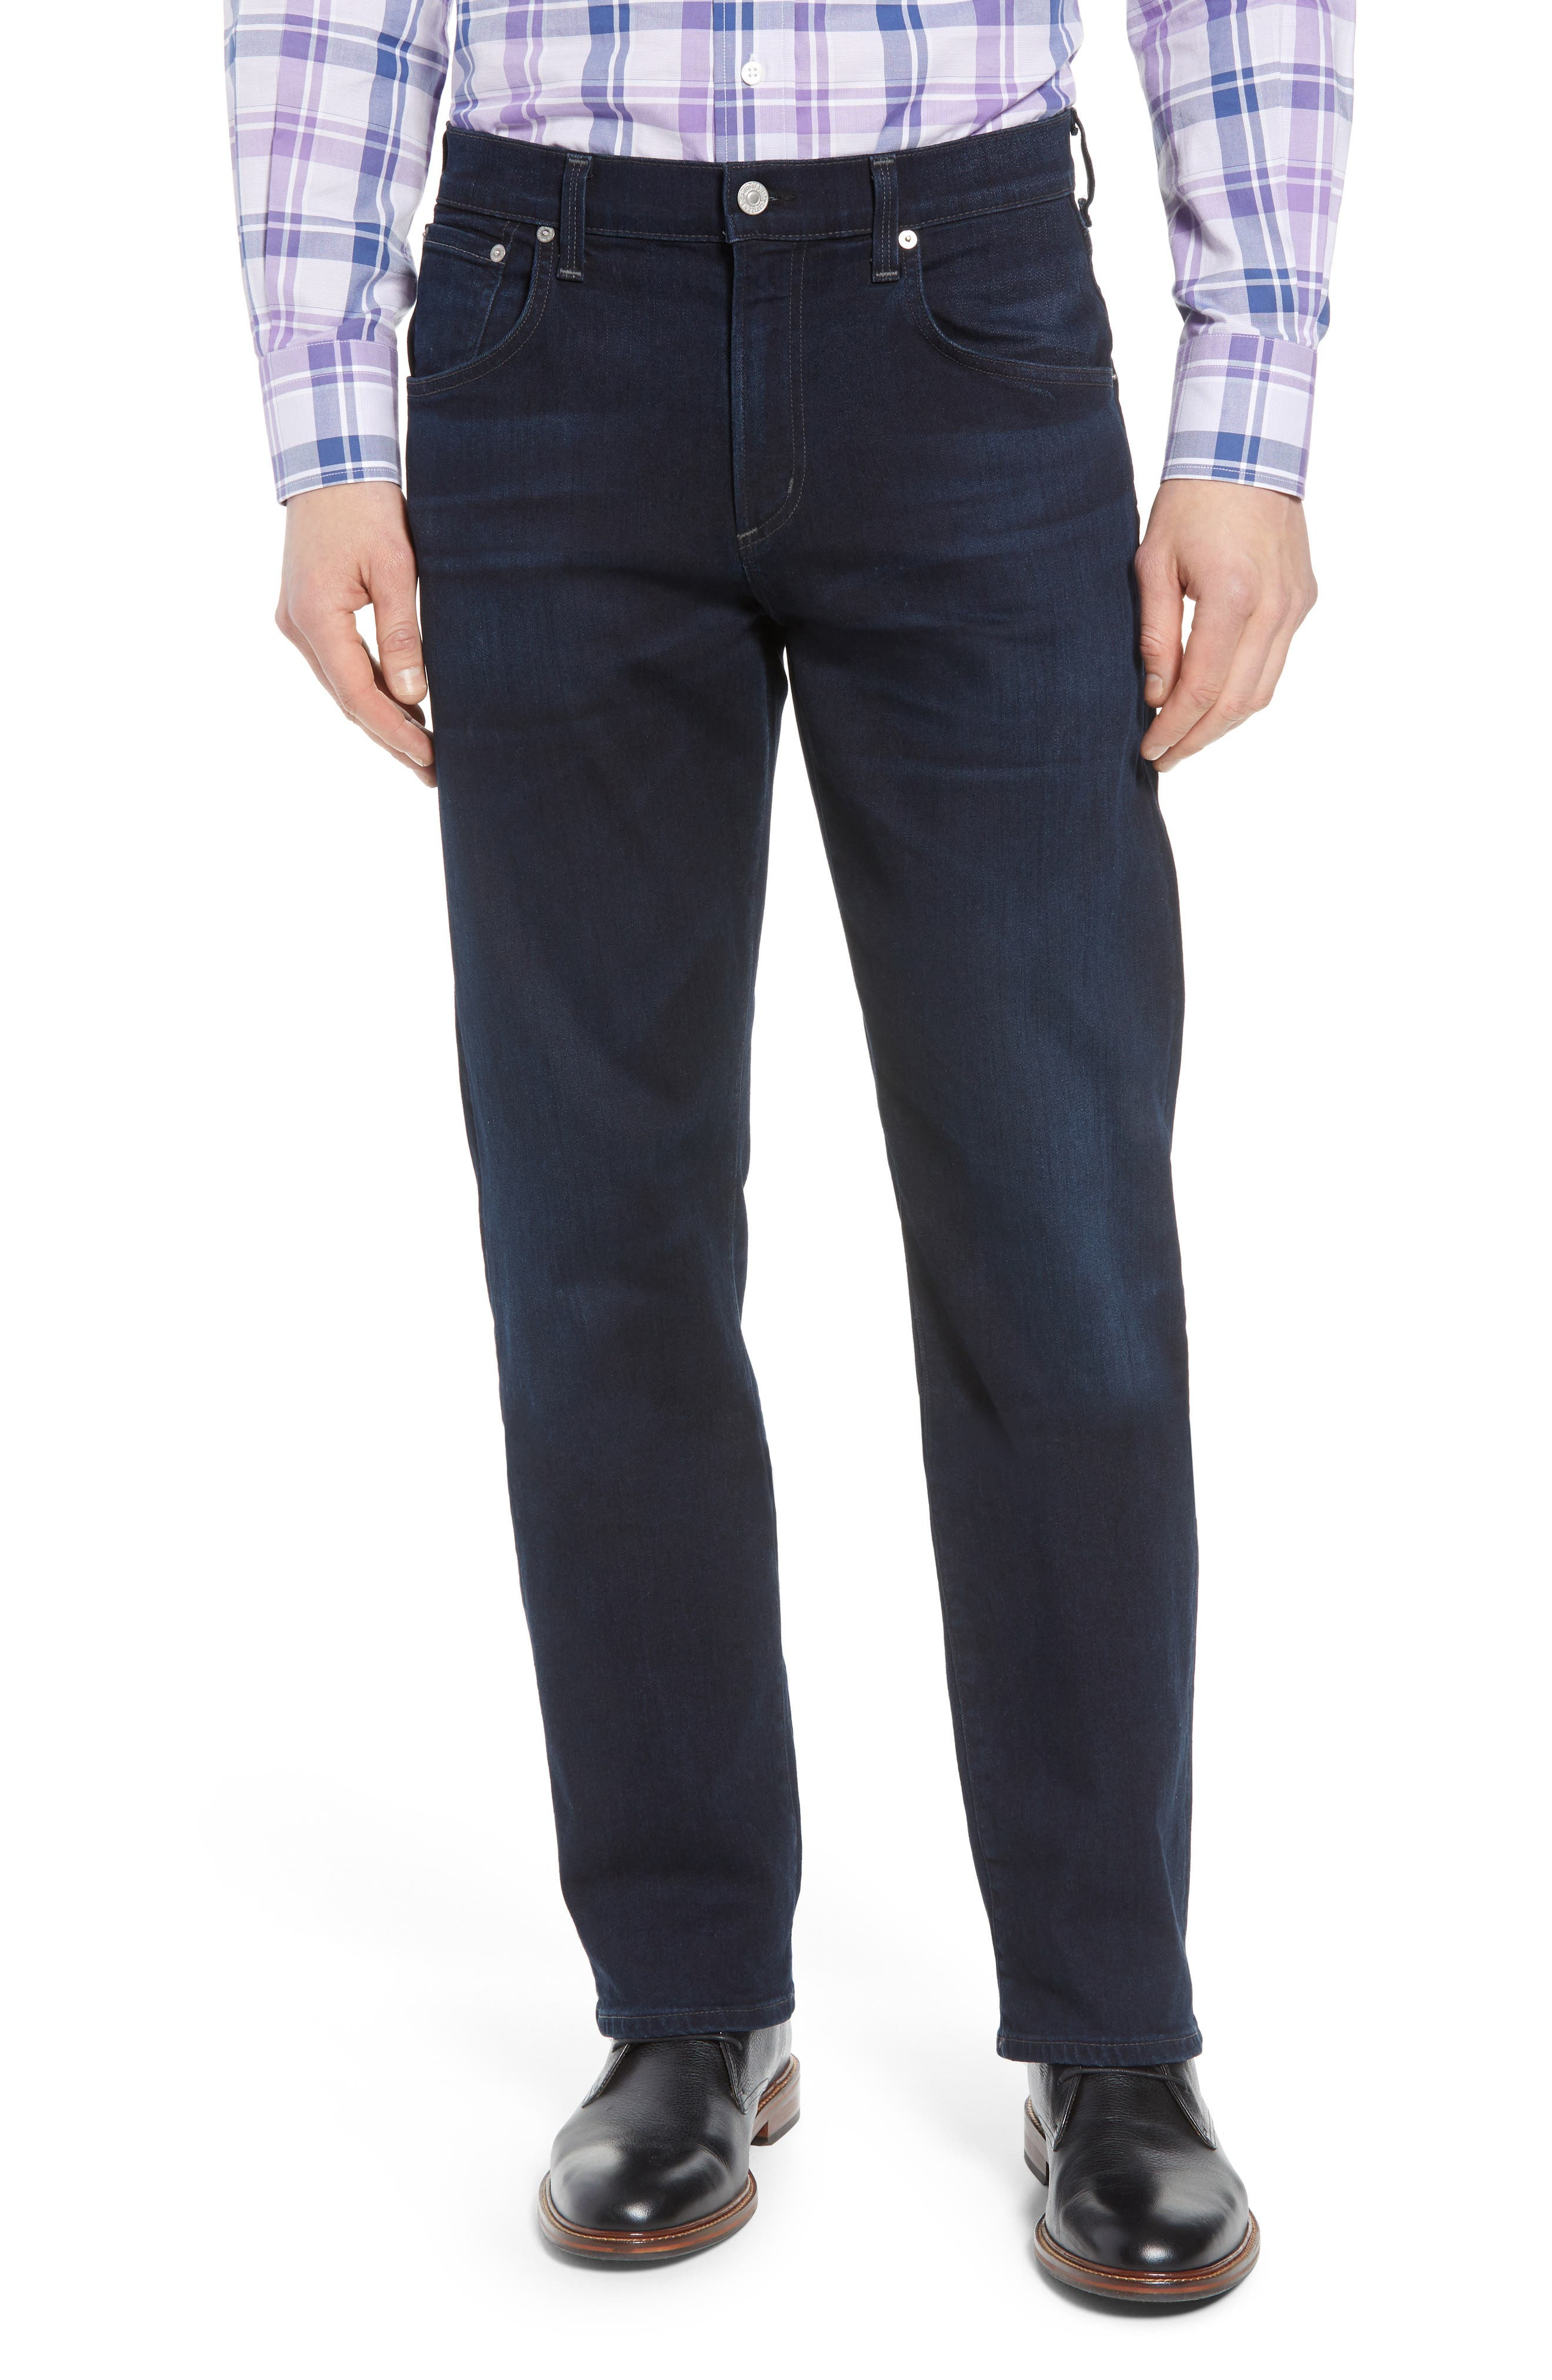 Citzens of Humanity Perfect Relaxed Fit Jeans,                             Main thumbnail 1, color,                             Miles